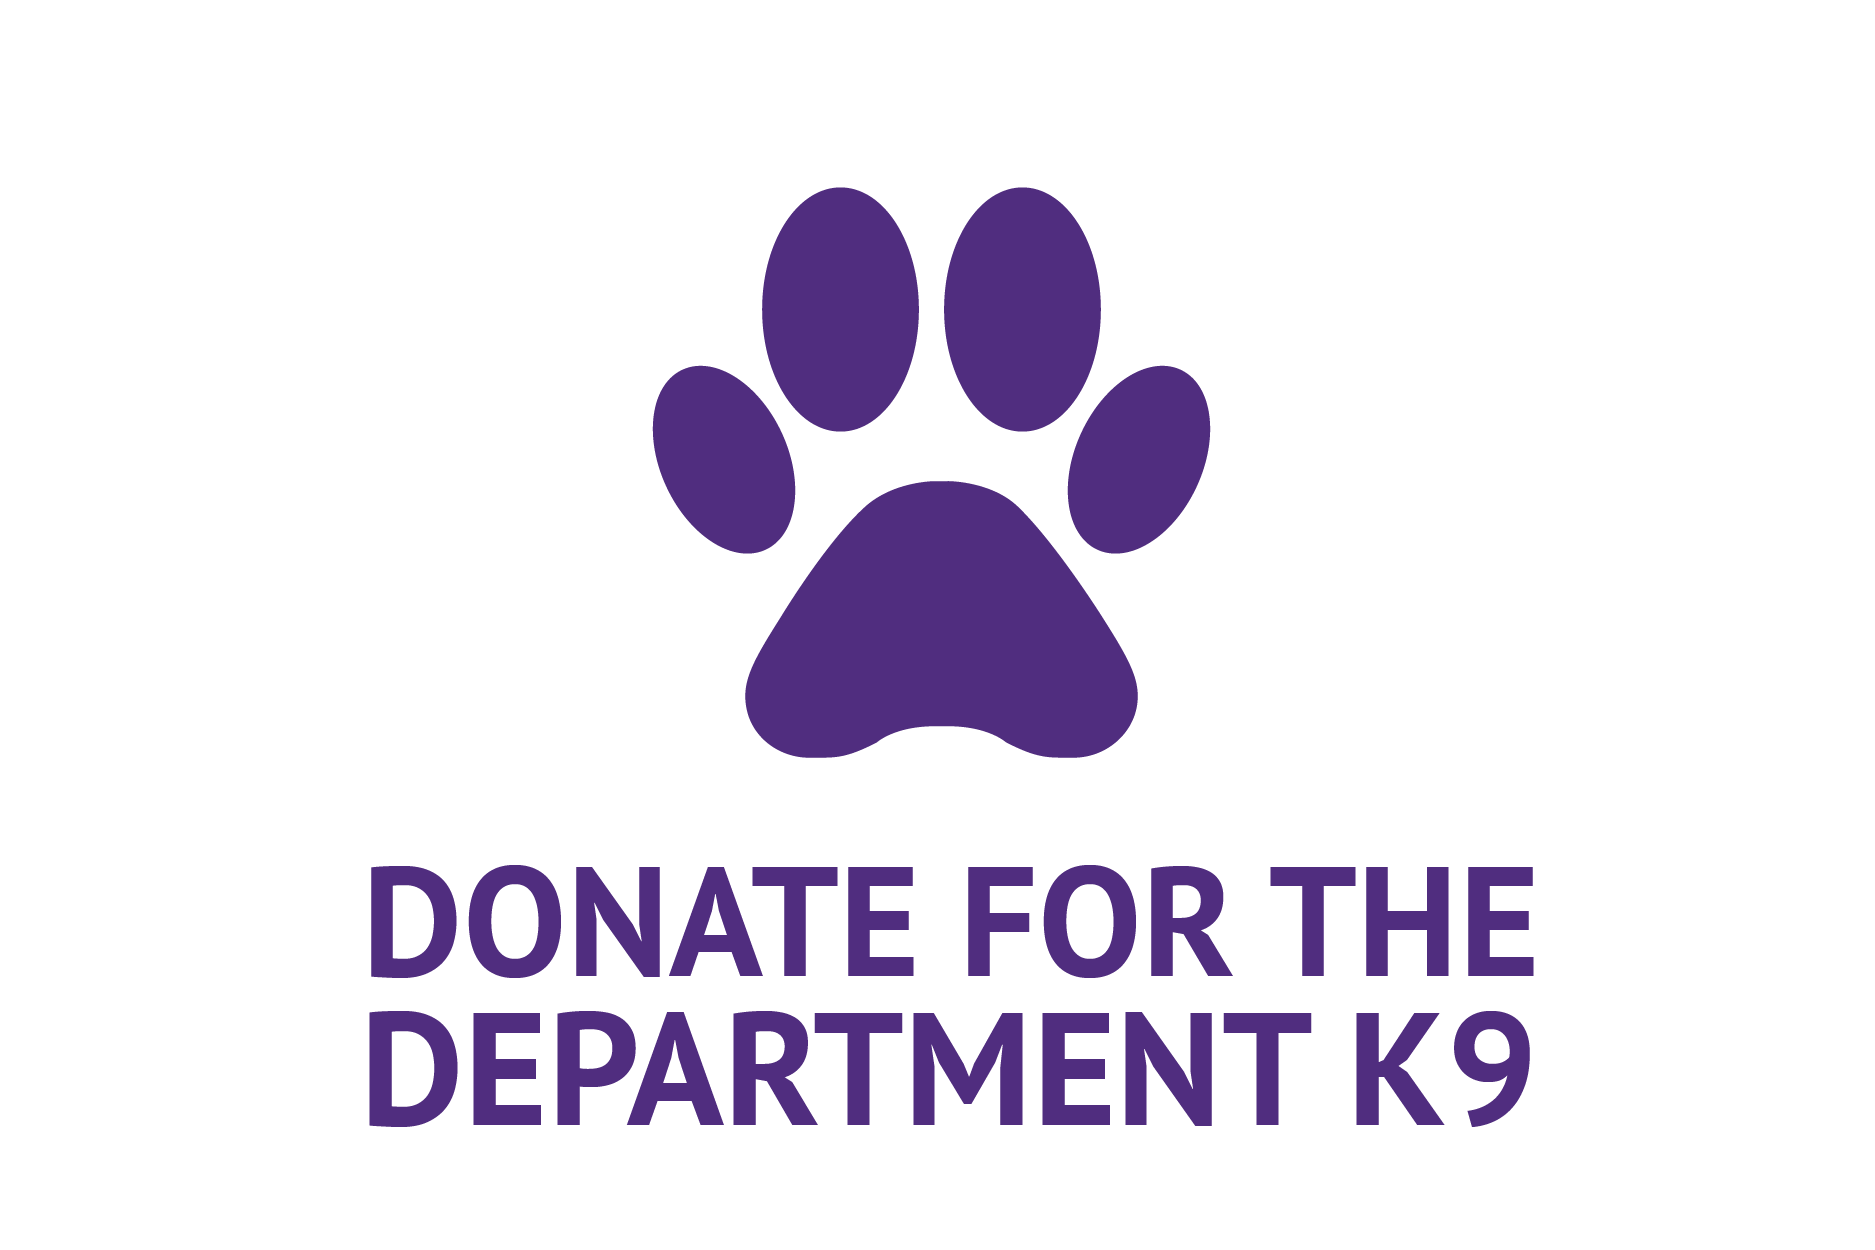 Donate for the UW-Whitewater Department K9